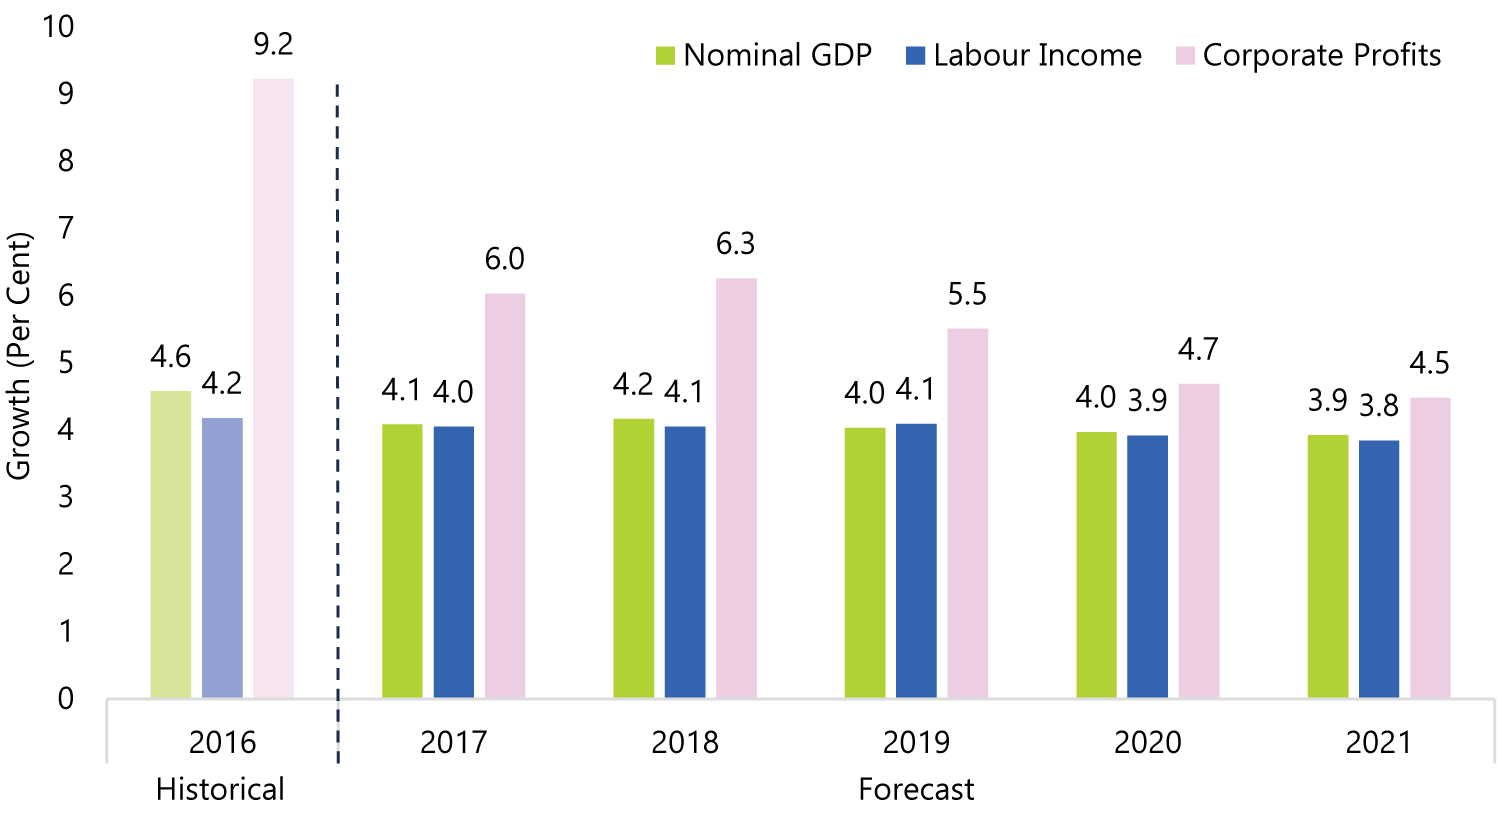 Labour Income and Corporate Profits Support Nominal GDP Growth